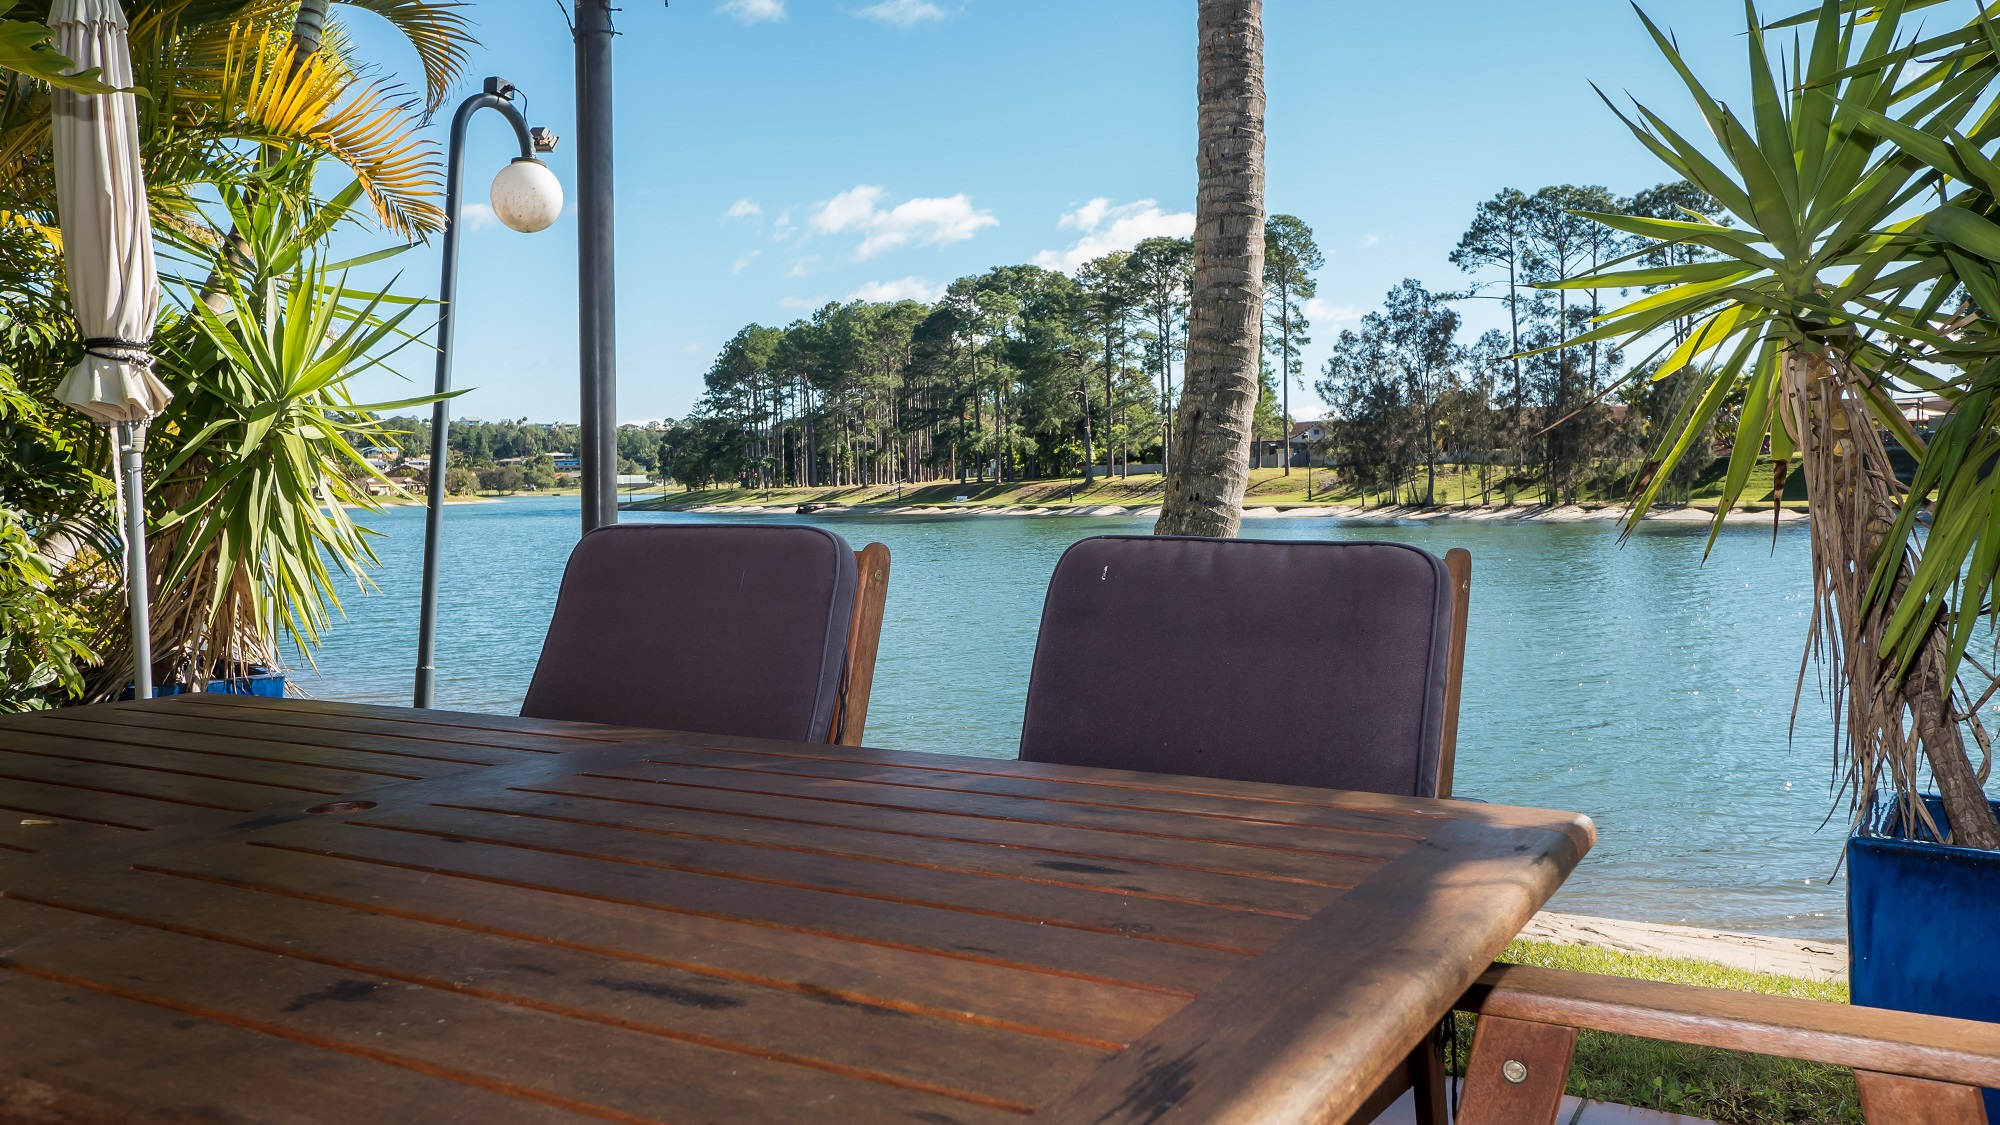 Isle of Palms Resort - Waterfront Outdoor Dining